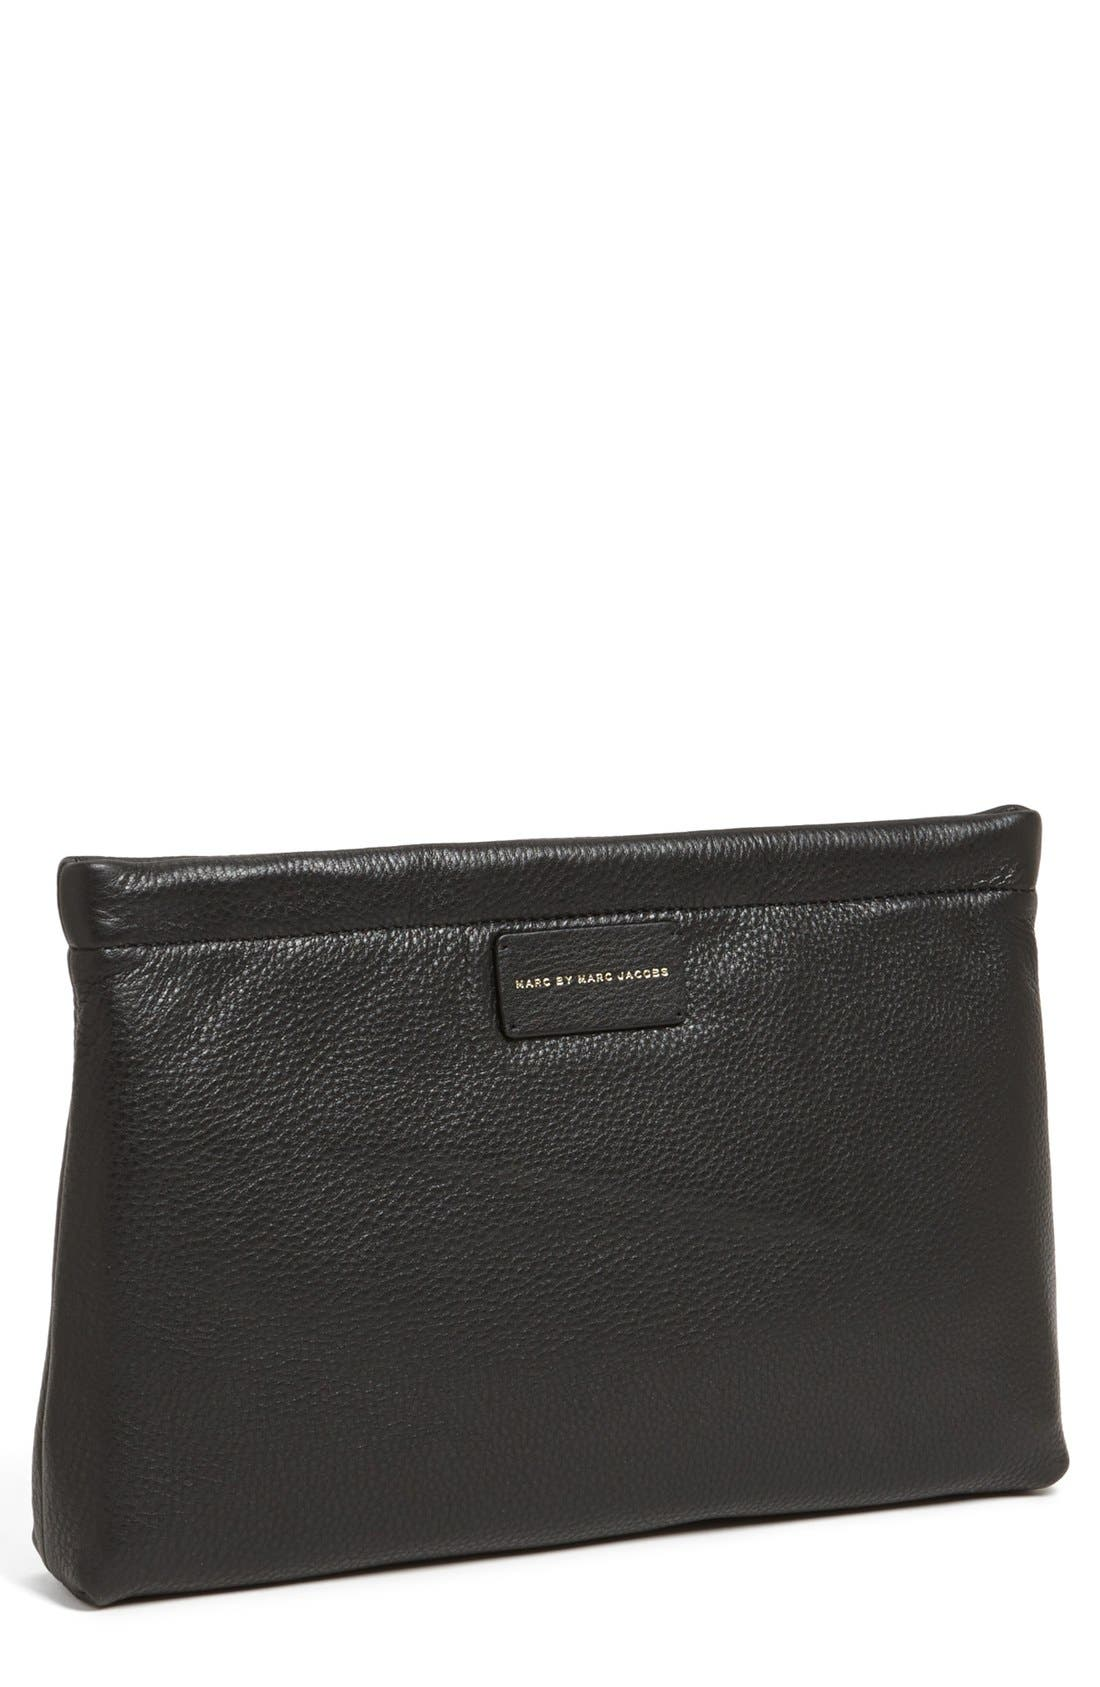 MARC BY MARC JACOBS 'Can't Clutch This - Large' Clutch, Main, color, 001